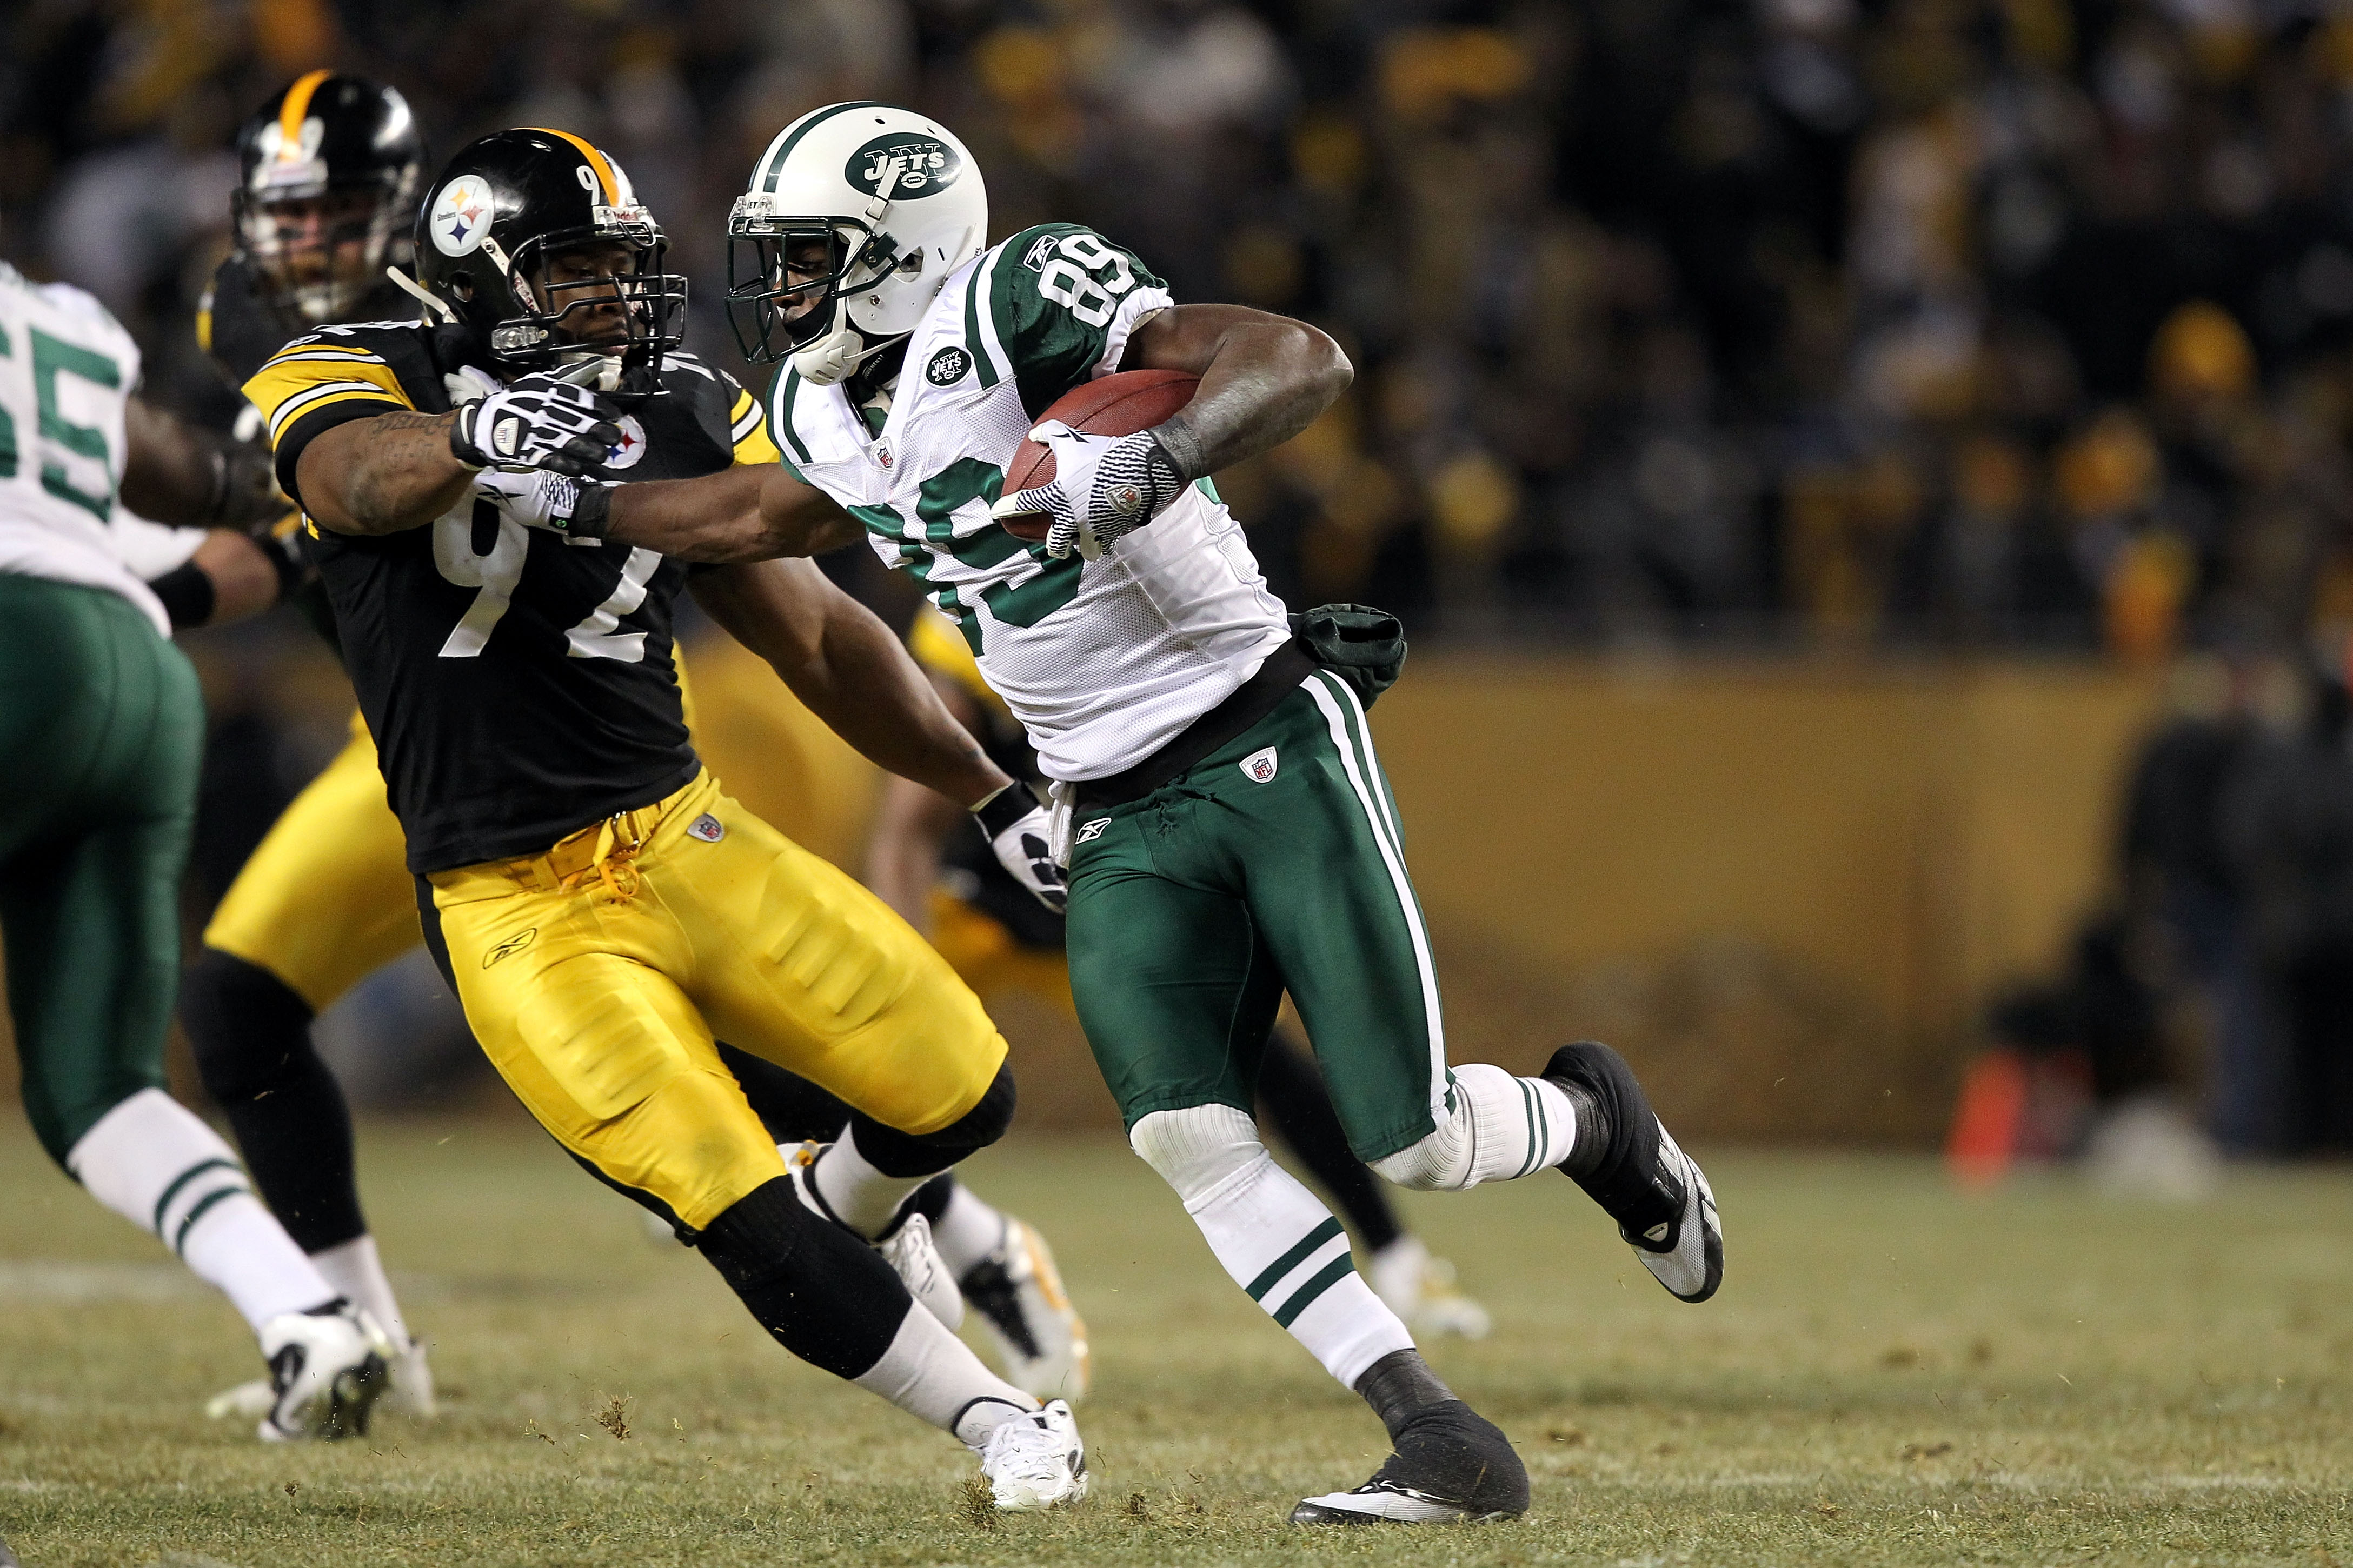 PITTSBURGH, PA - JANUARY 23:  Jerricho Cotchery #89 of the New York Jets runs with the ball against James Harrison #92 of the Pittsburgh Steelers during the 2011 AFC Championship game at Heinz Field on January 23, 2011 in Pittsburgh, Pennsylvania. The Ste